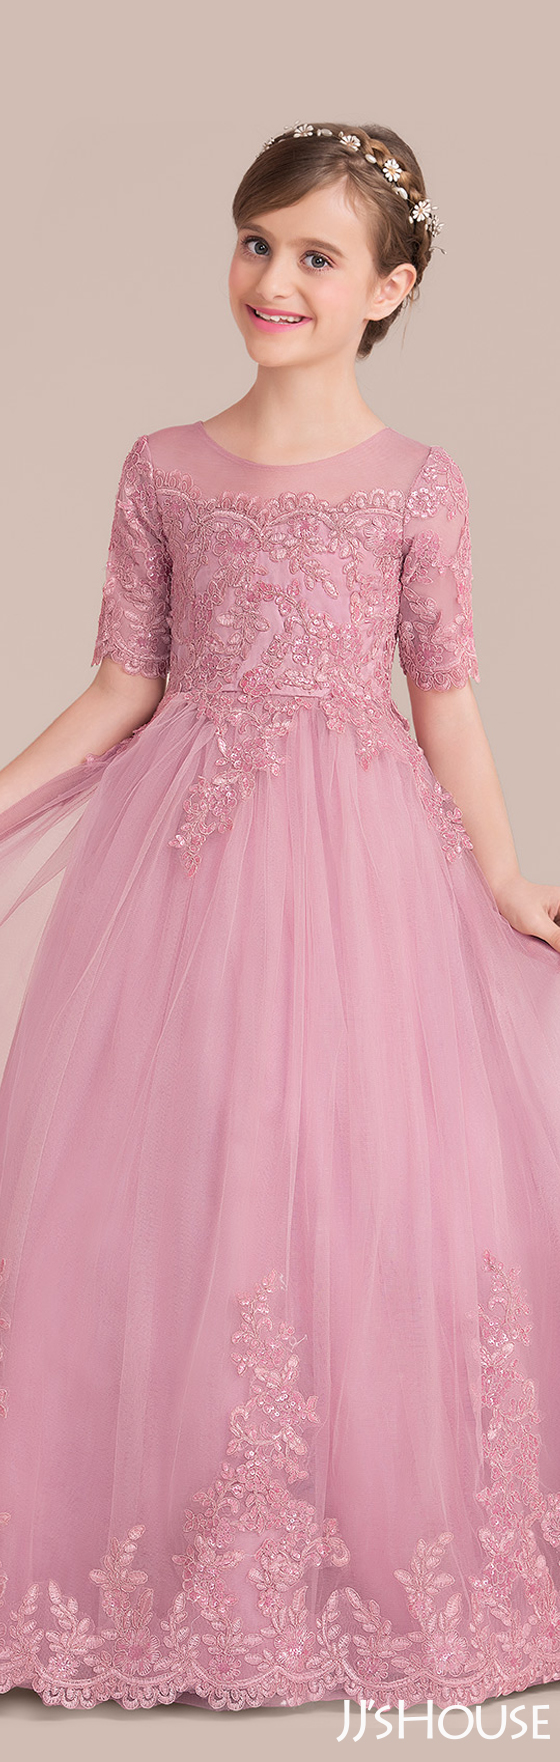 The junior bridesmaid dress has such fantastic color and design ...